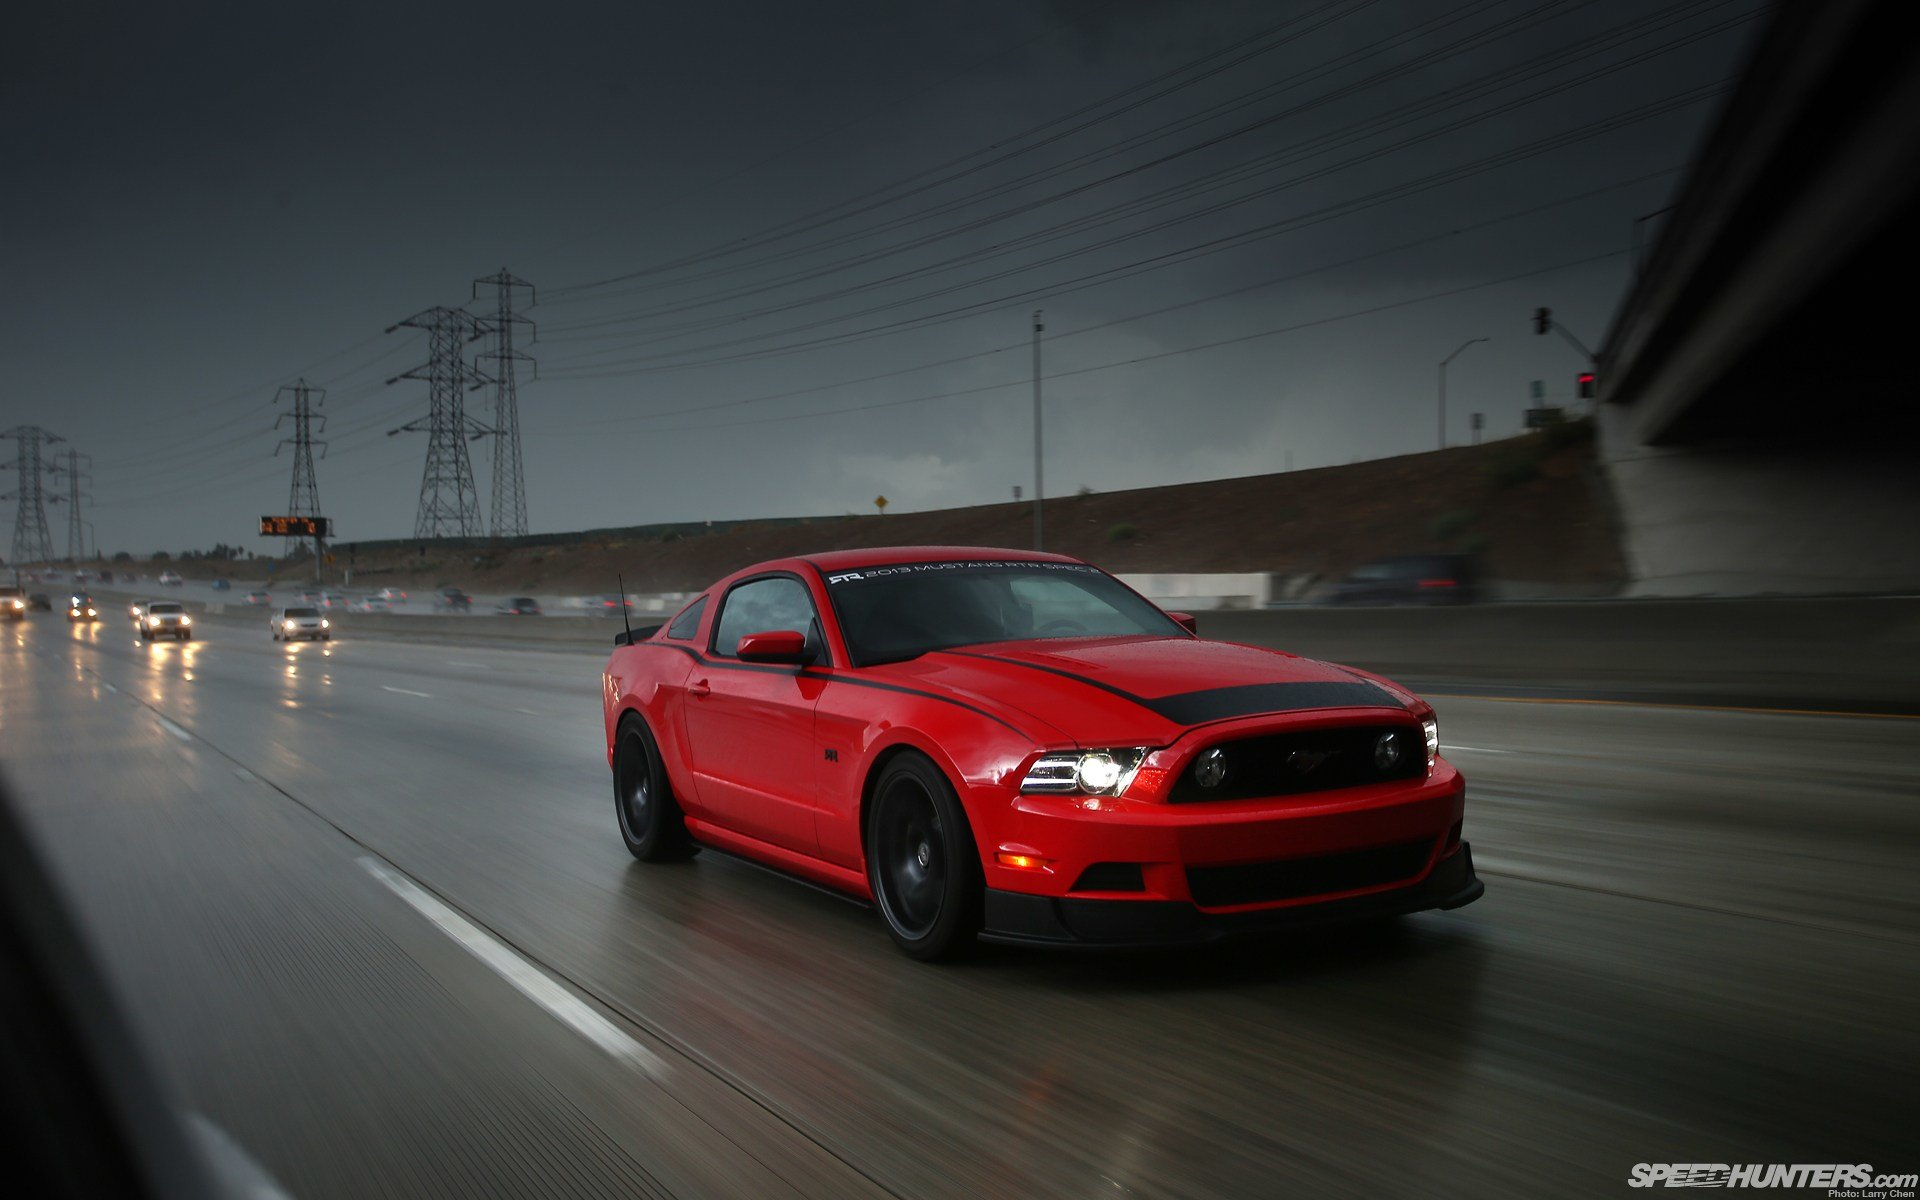 Latest Ford Mustang Highway Road Cars Vehicles Wallpaper Free Download